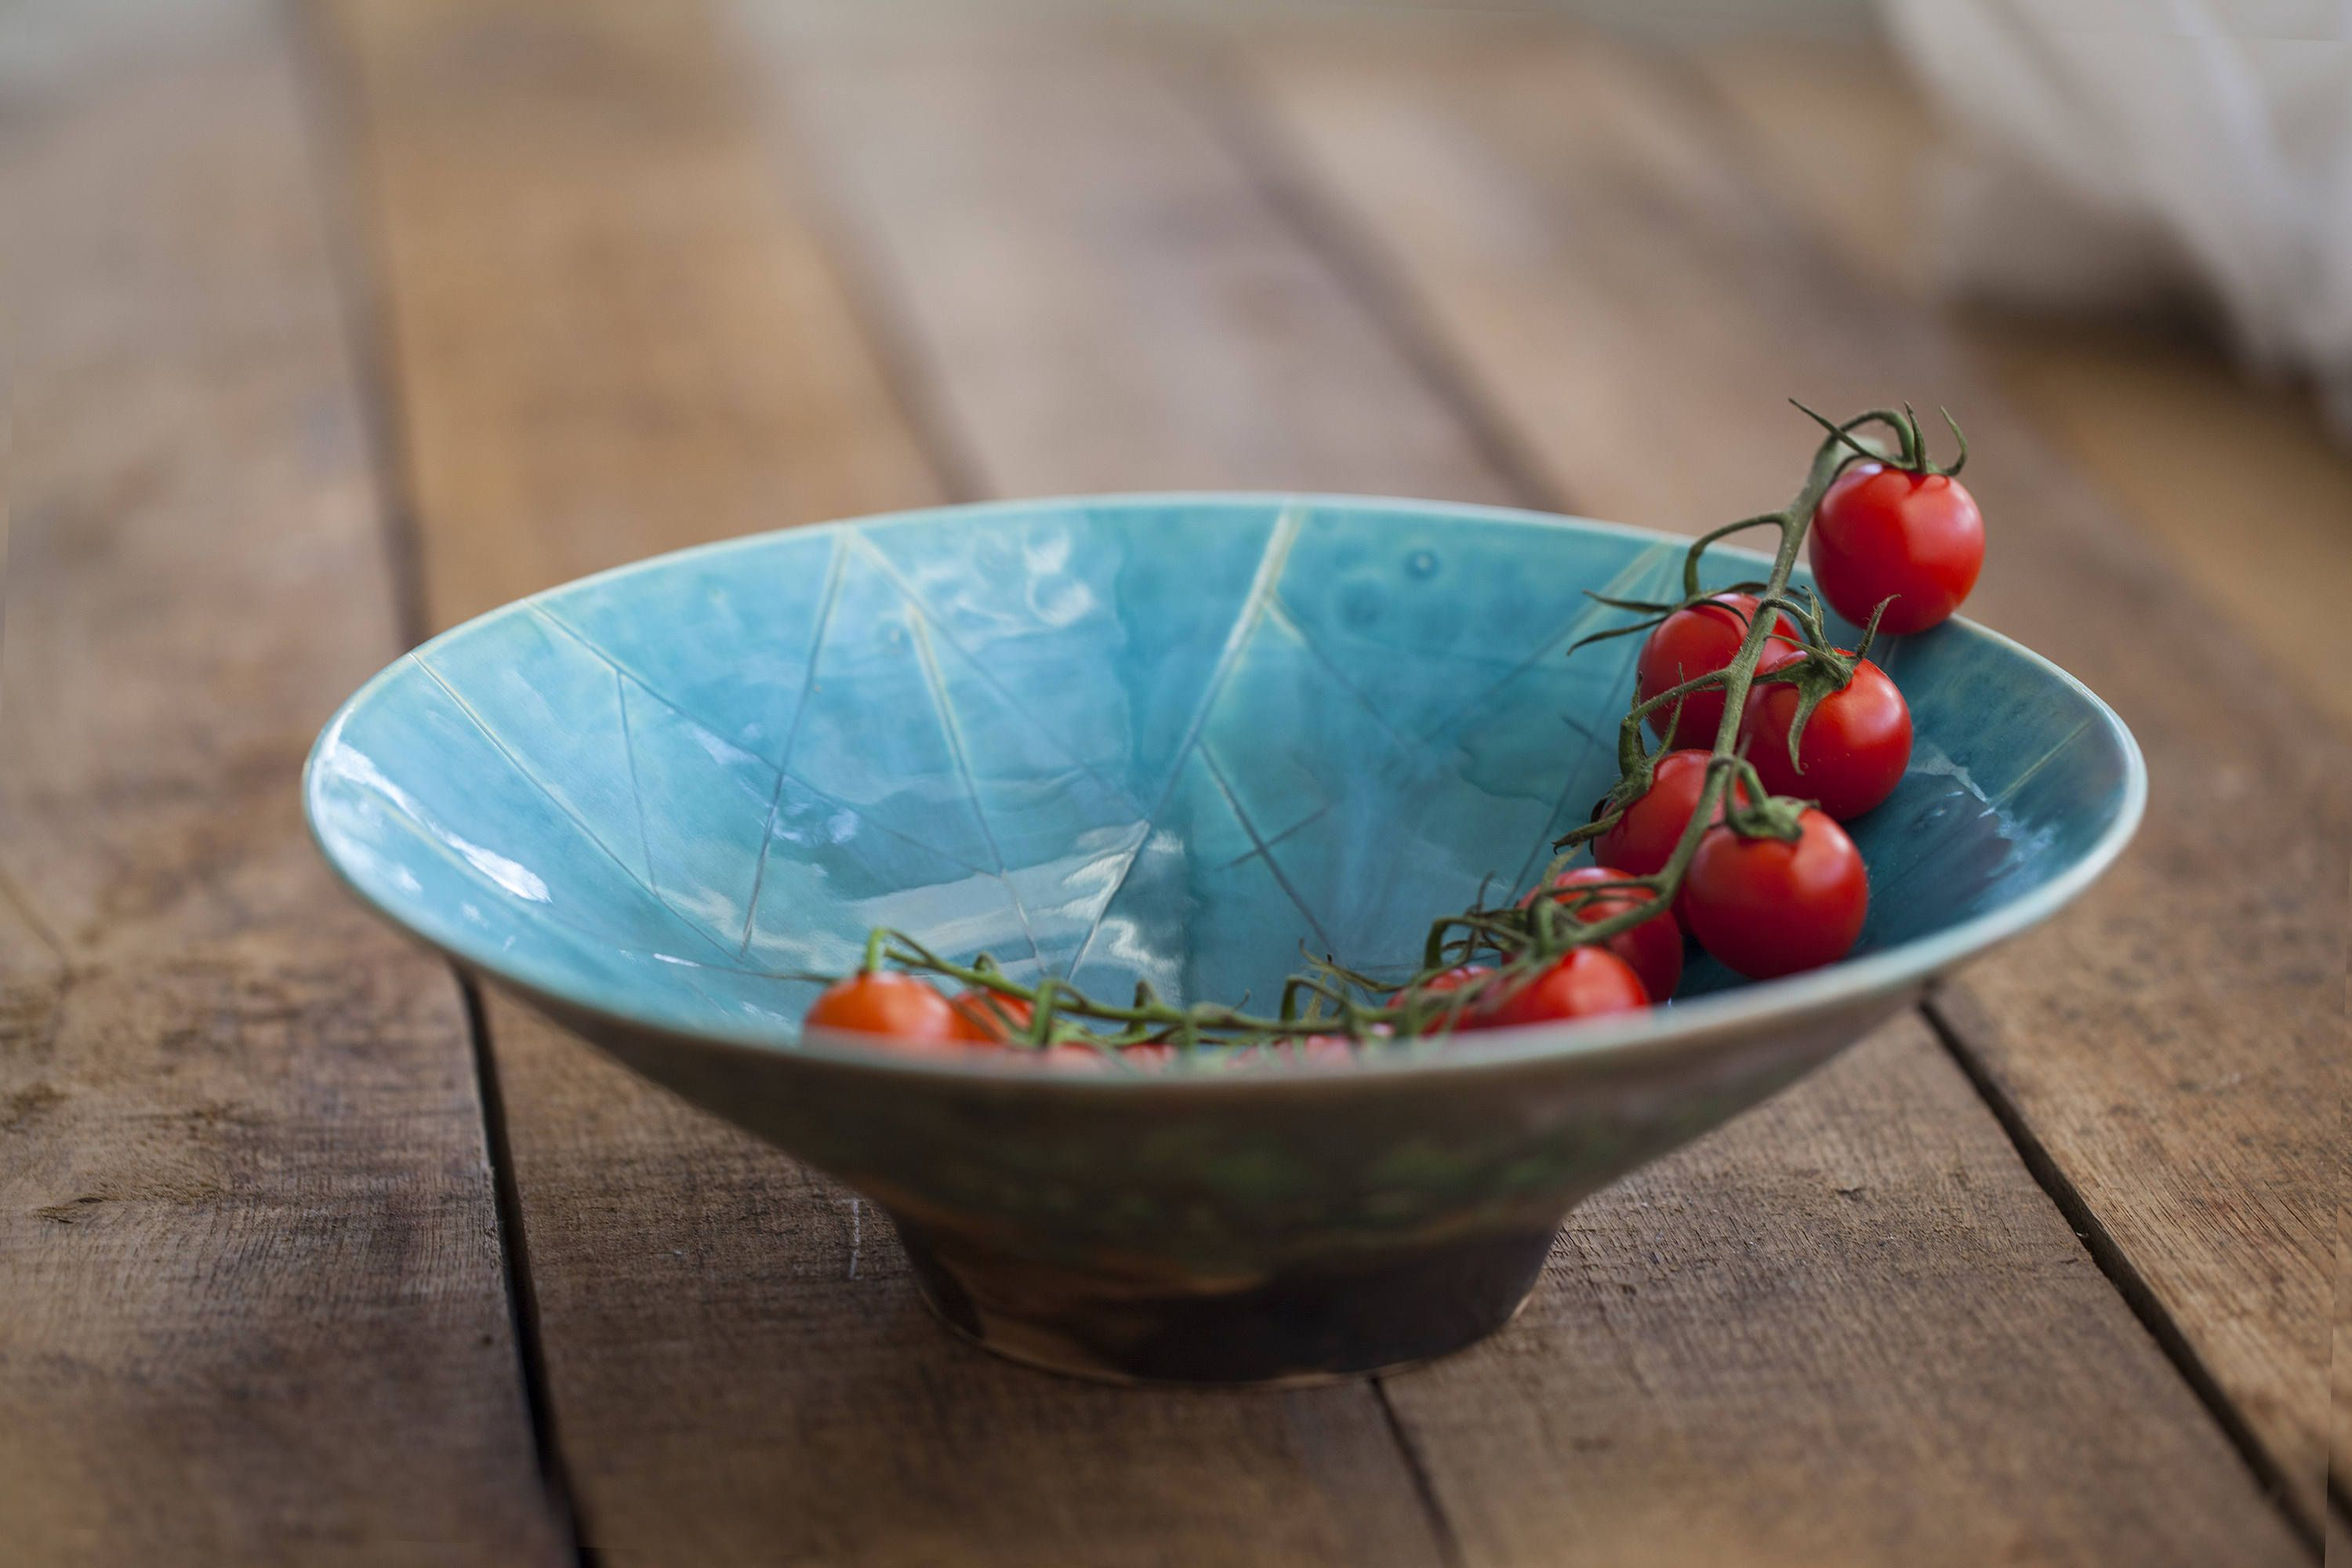 Decorative Ceramic Bowl Ceramic Plates Decorative Ceramic Pottery Bowl Ceramic Fruit